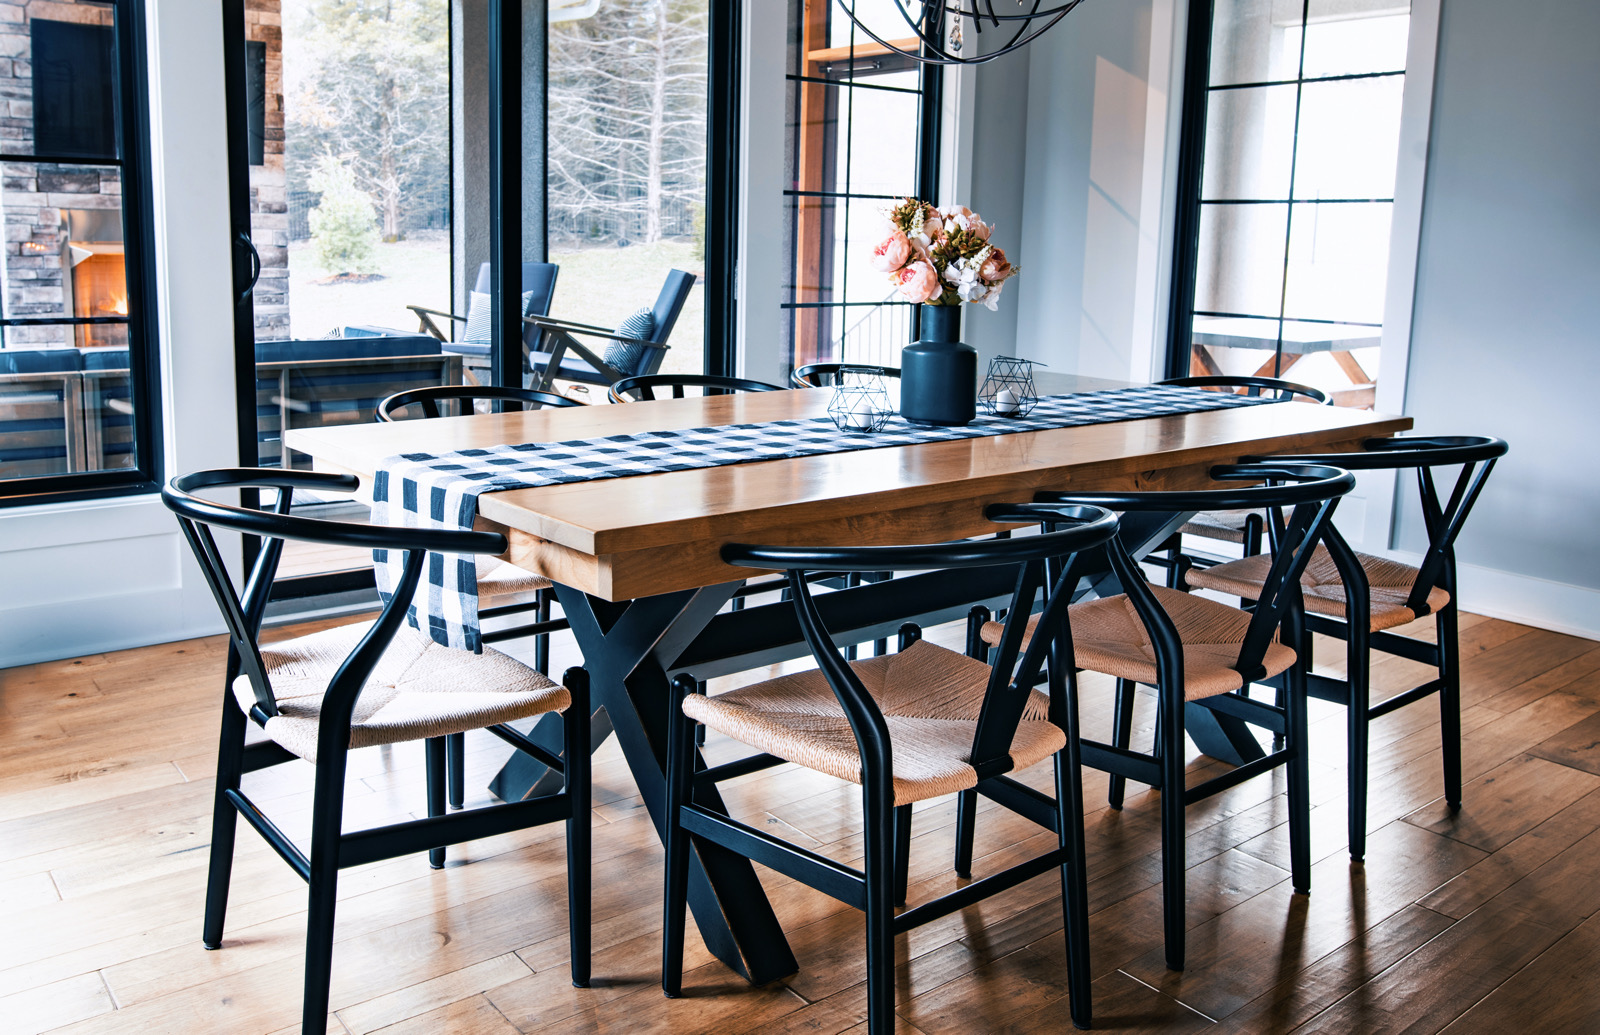 Wooden Tables for Transitional Design